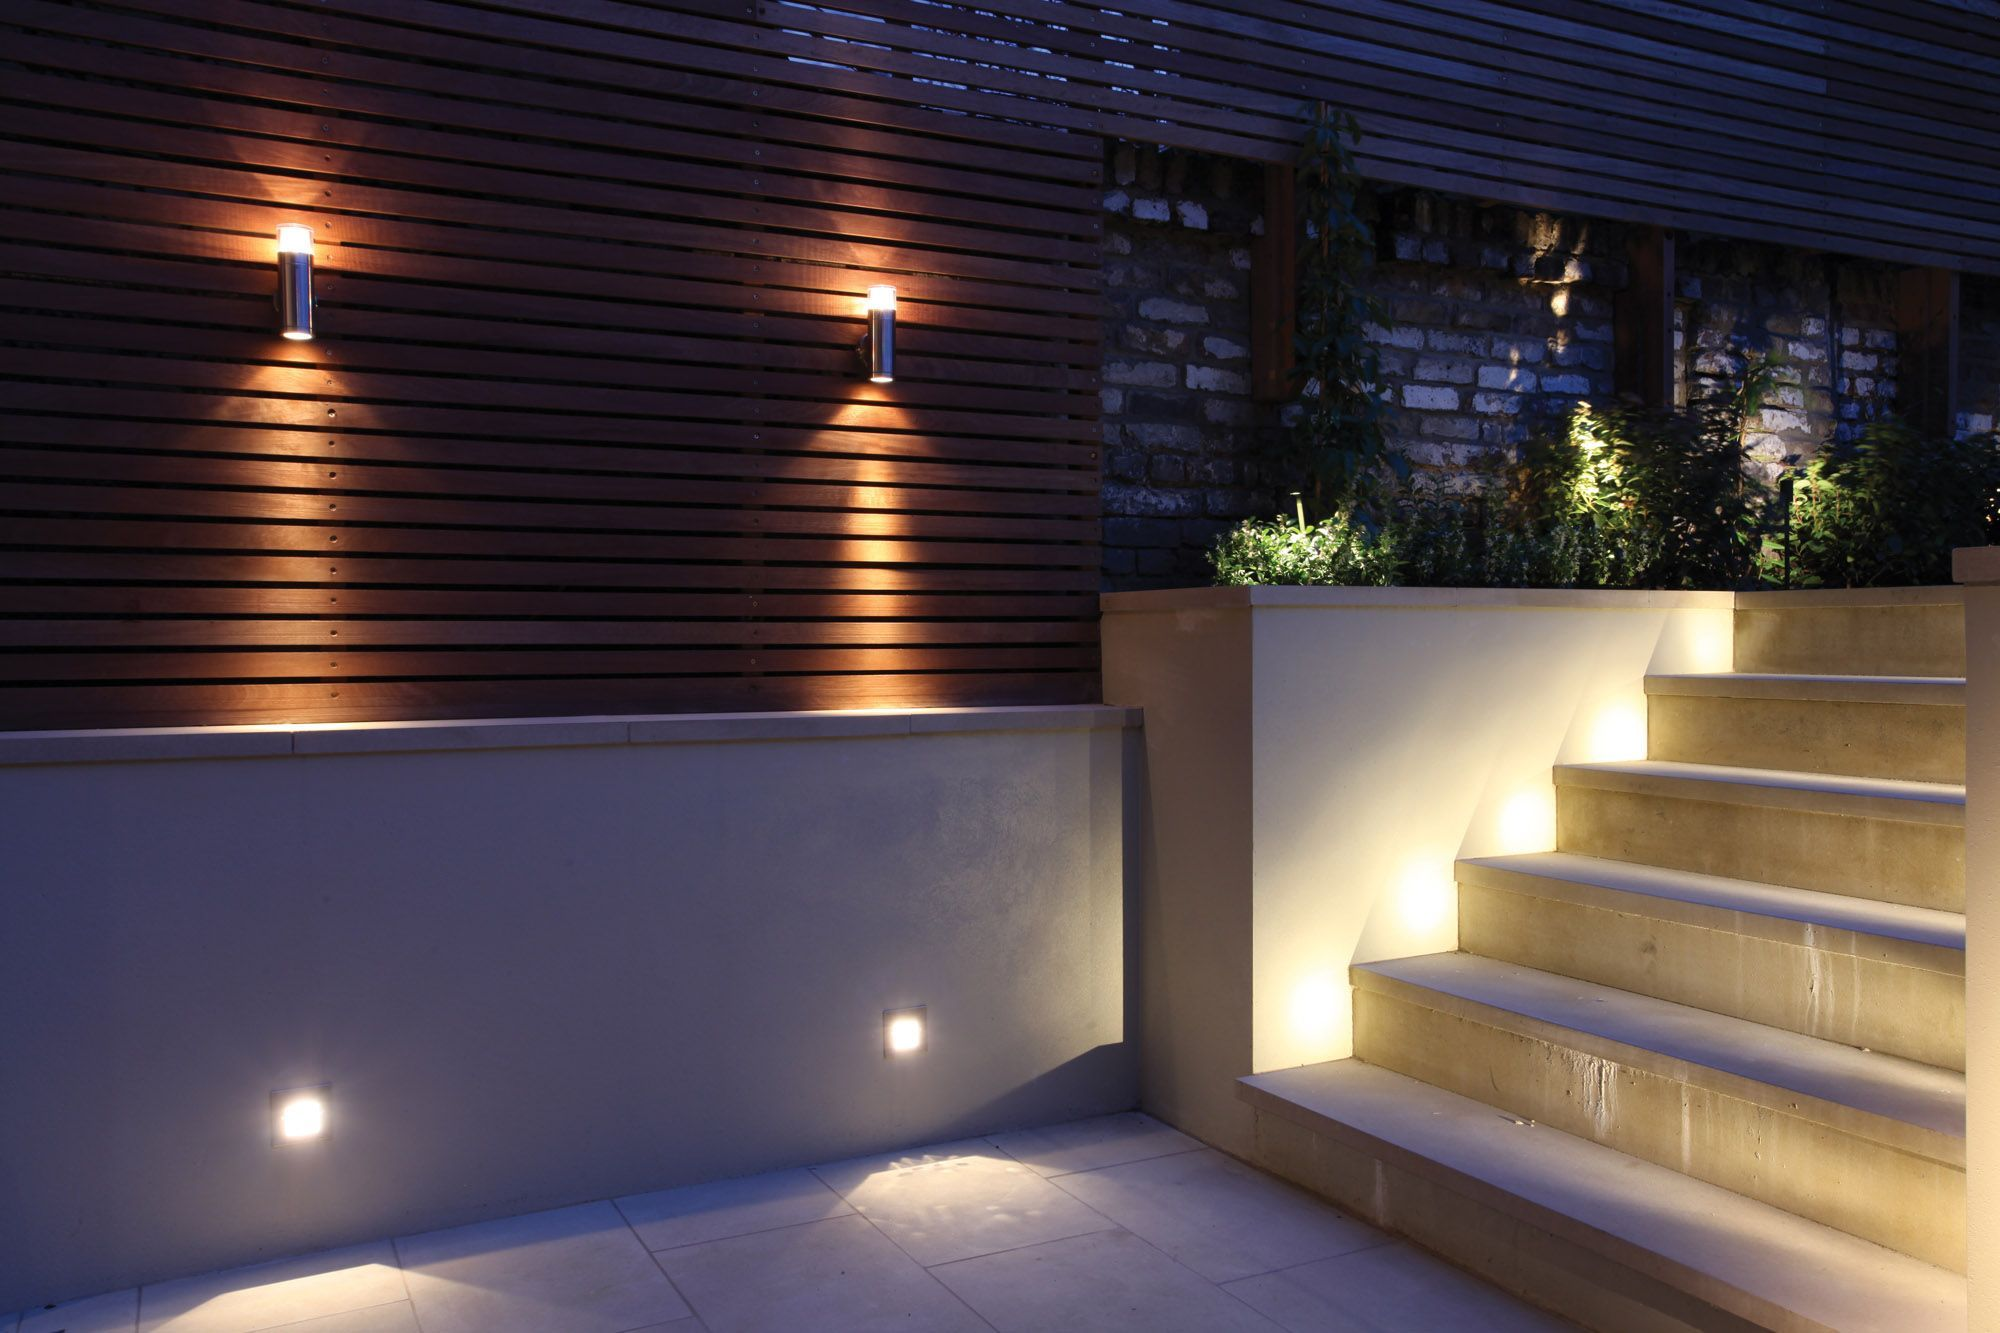 Garden Lights Uk 9 Functional Garden Lighting Two Types Of Lighting Can Be Distinguished In The Garden In 2020 Fence Lighting Garden Lighting Backyard Lighting